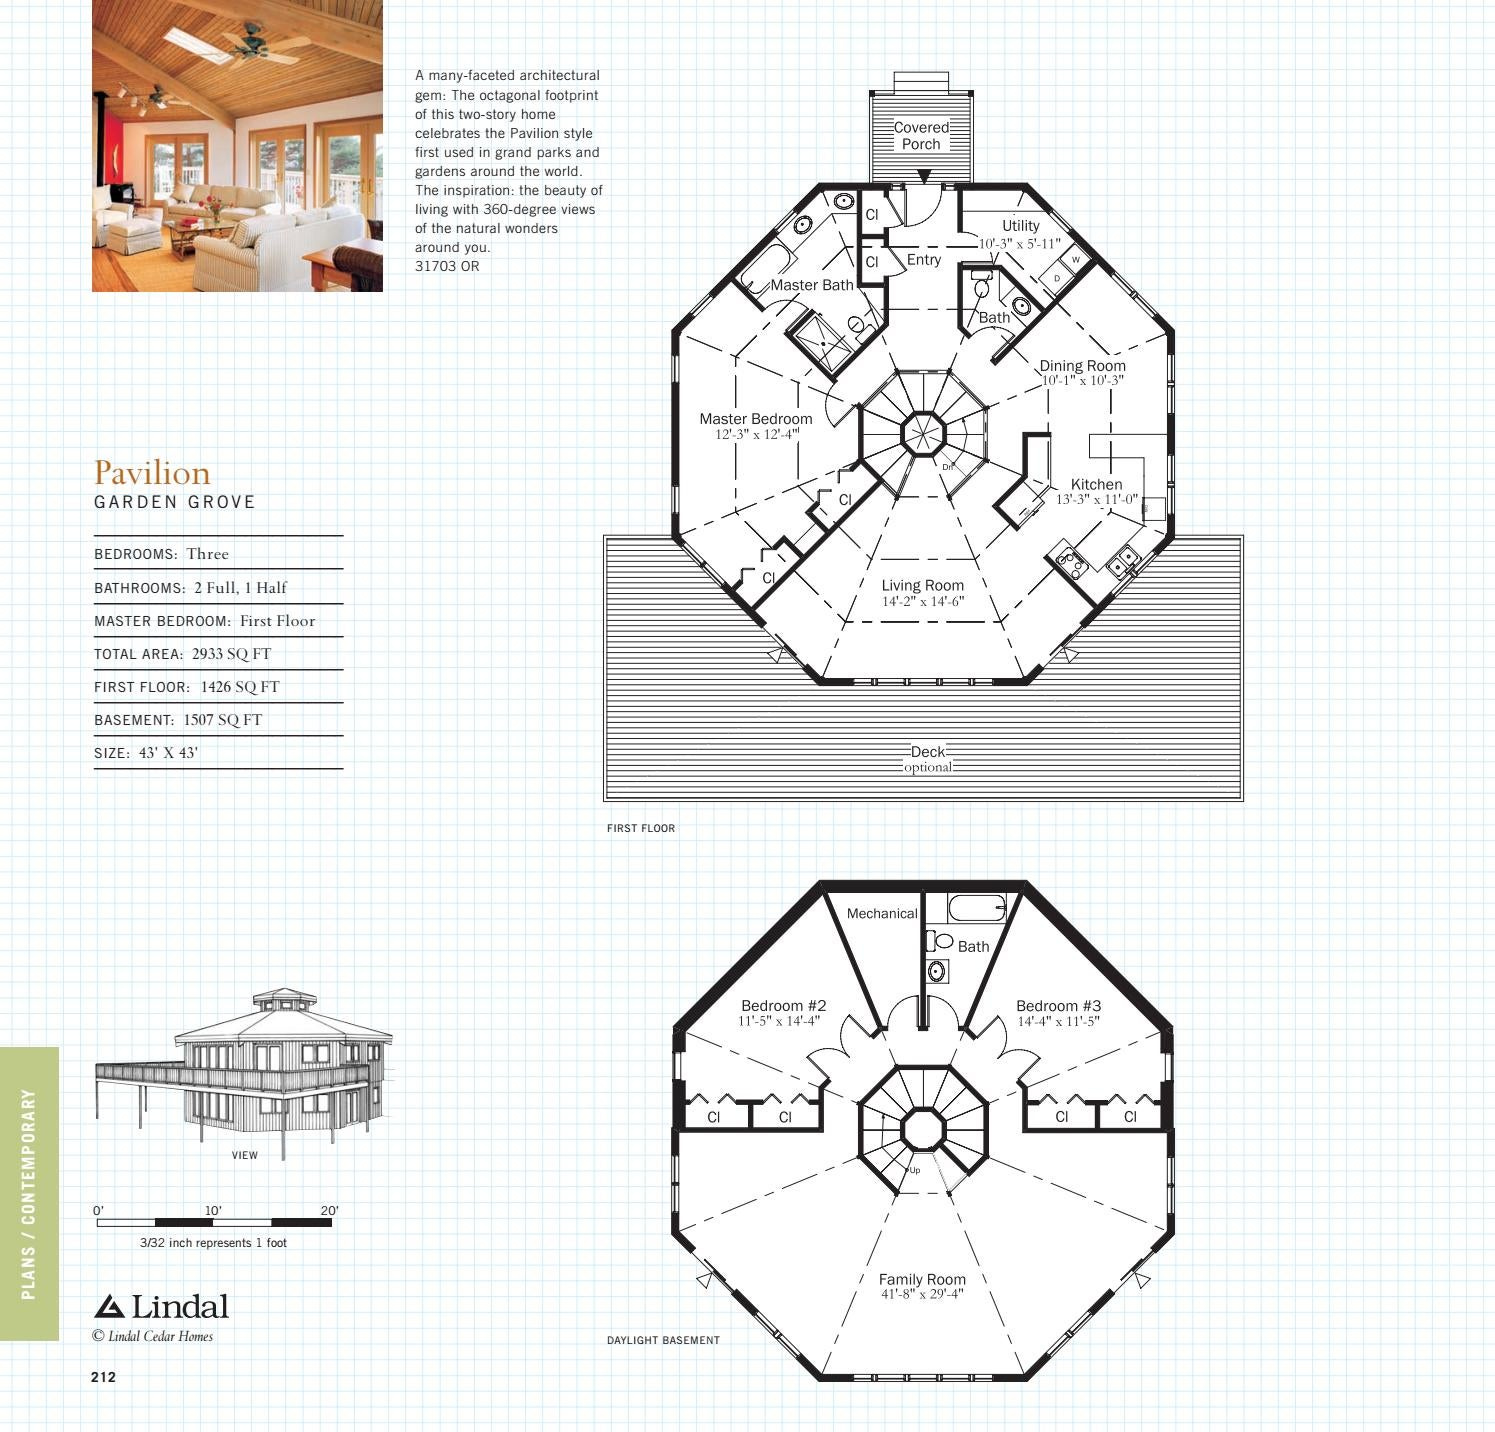 House Plan For 16 Feet By 54 Feet Plot Plot Size 96: Living Dreams: Lindal Cedar Homes Plan Book By Lindal